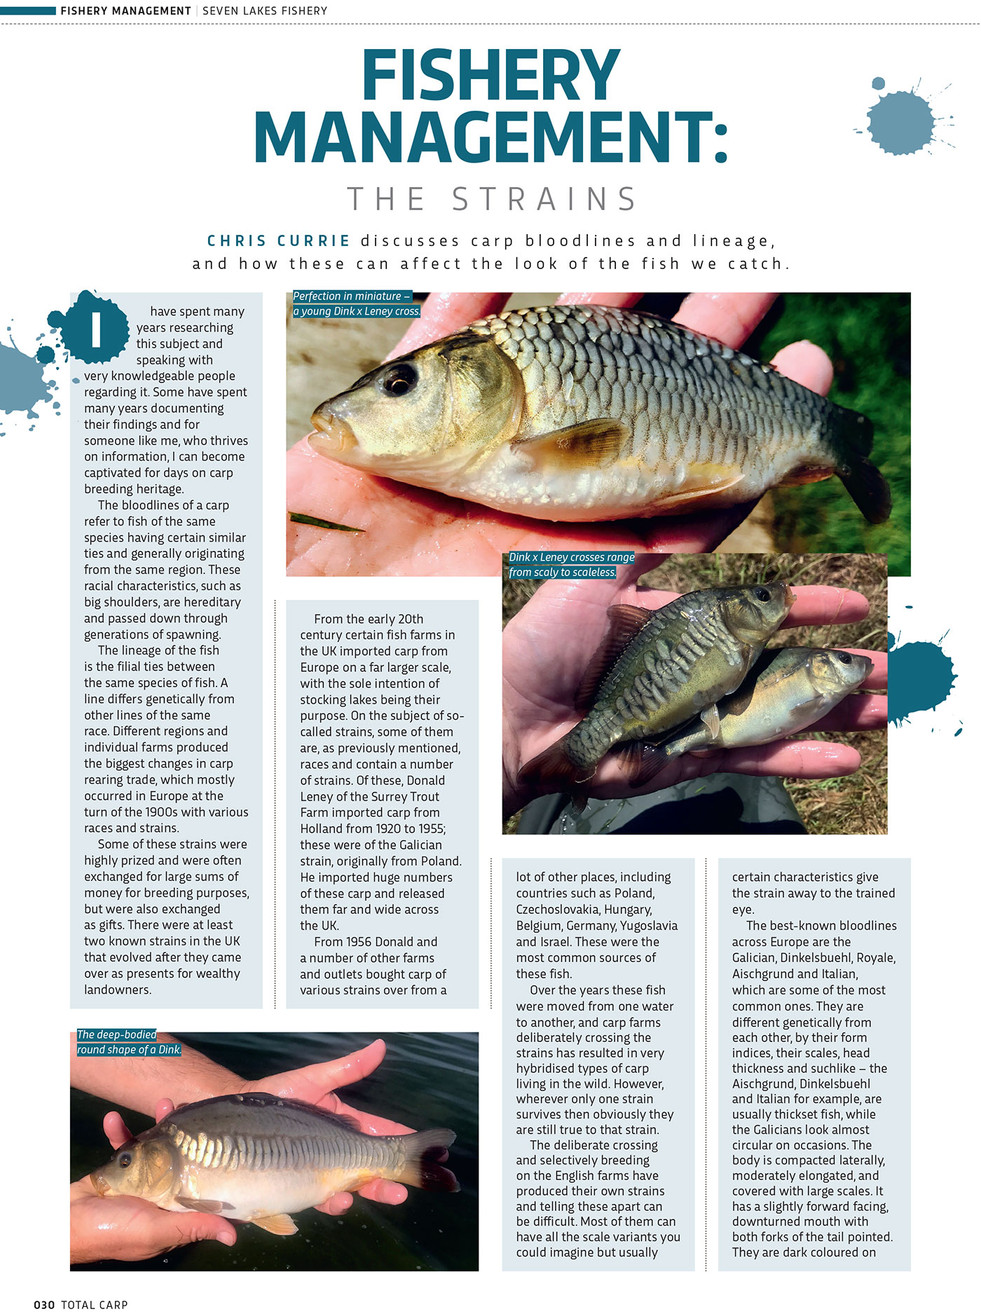 FISHERY MANAGEMENT THE STRAINS